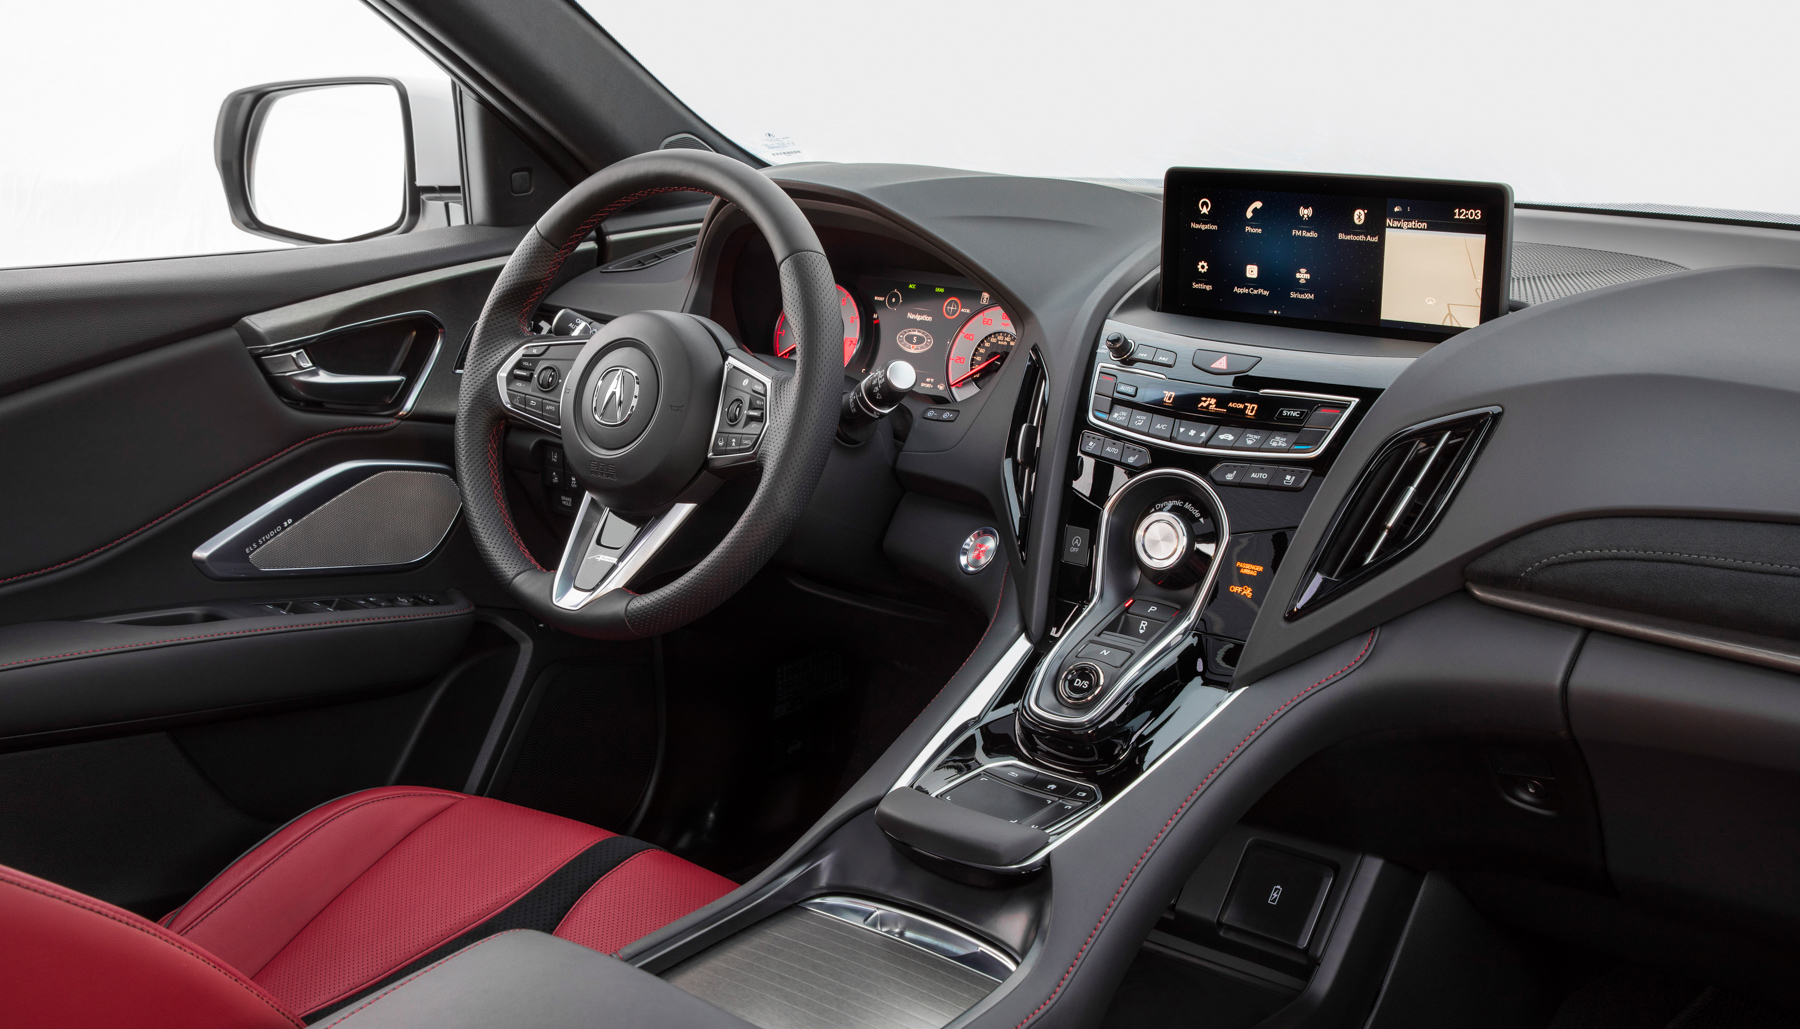 Acura skips the touchscreen for its infotainment system